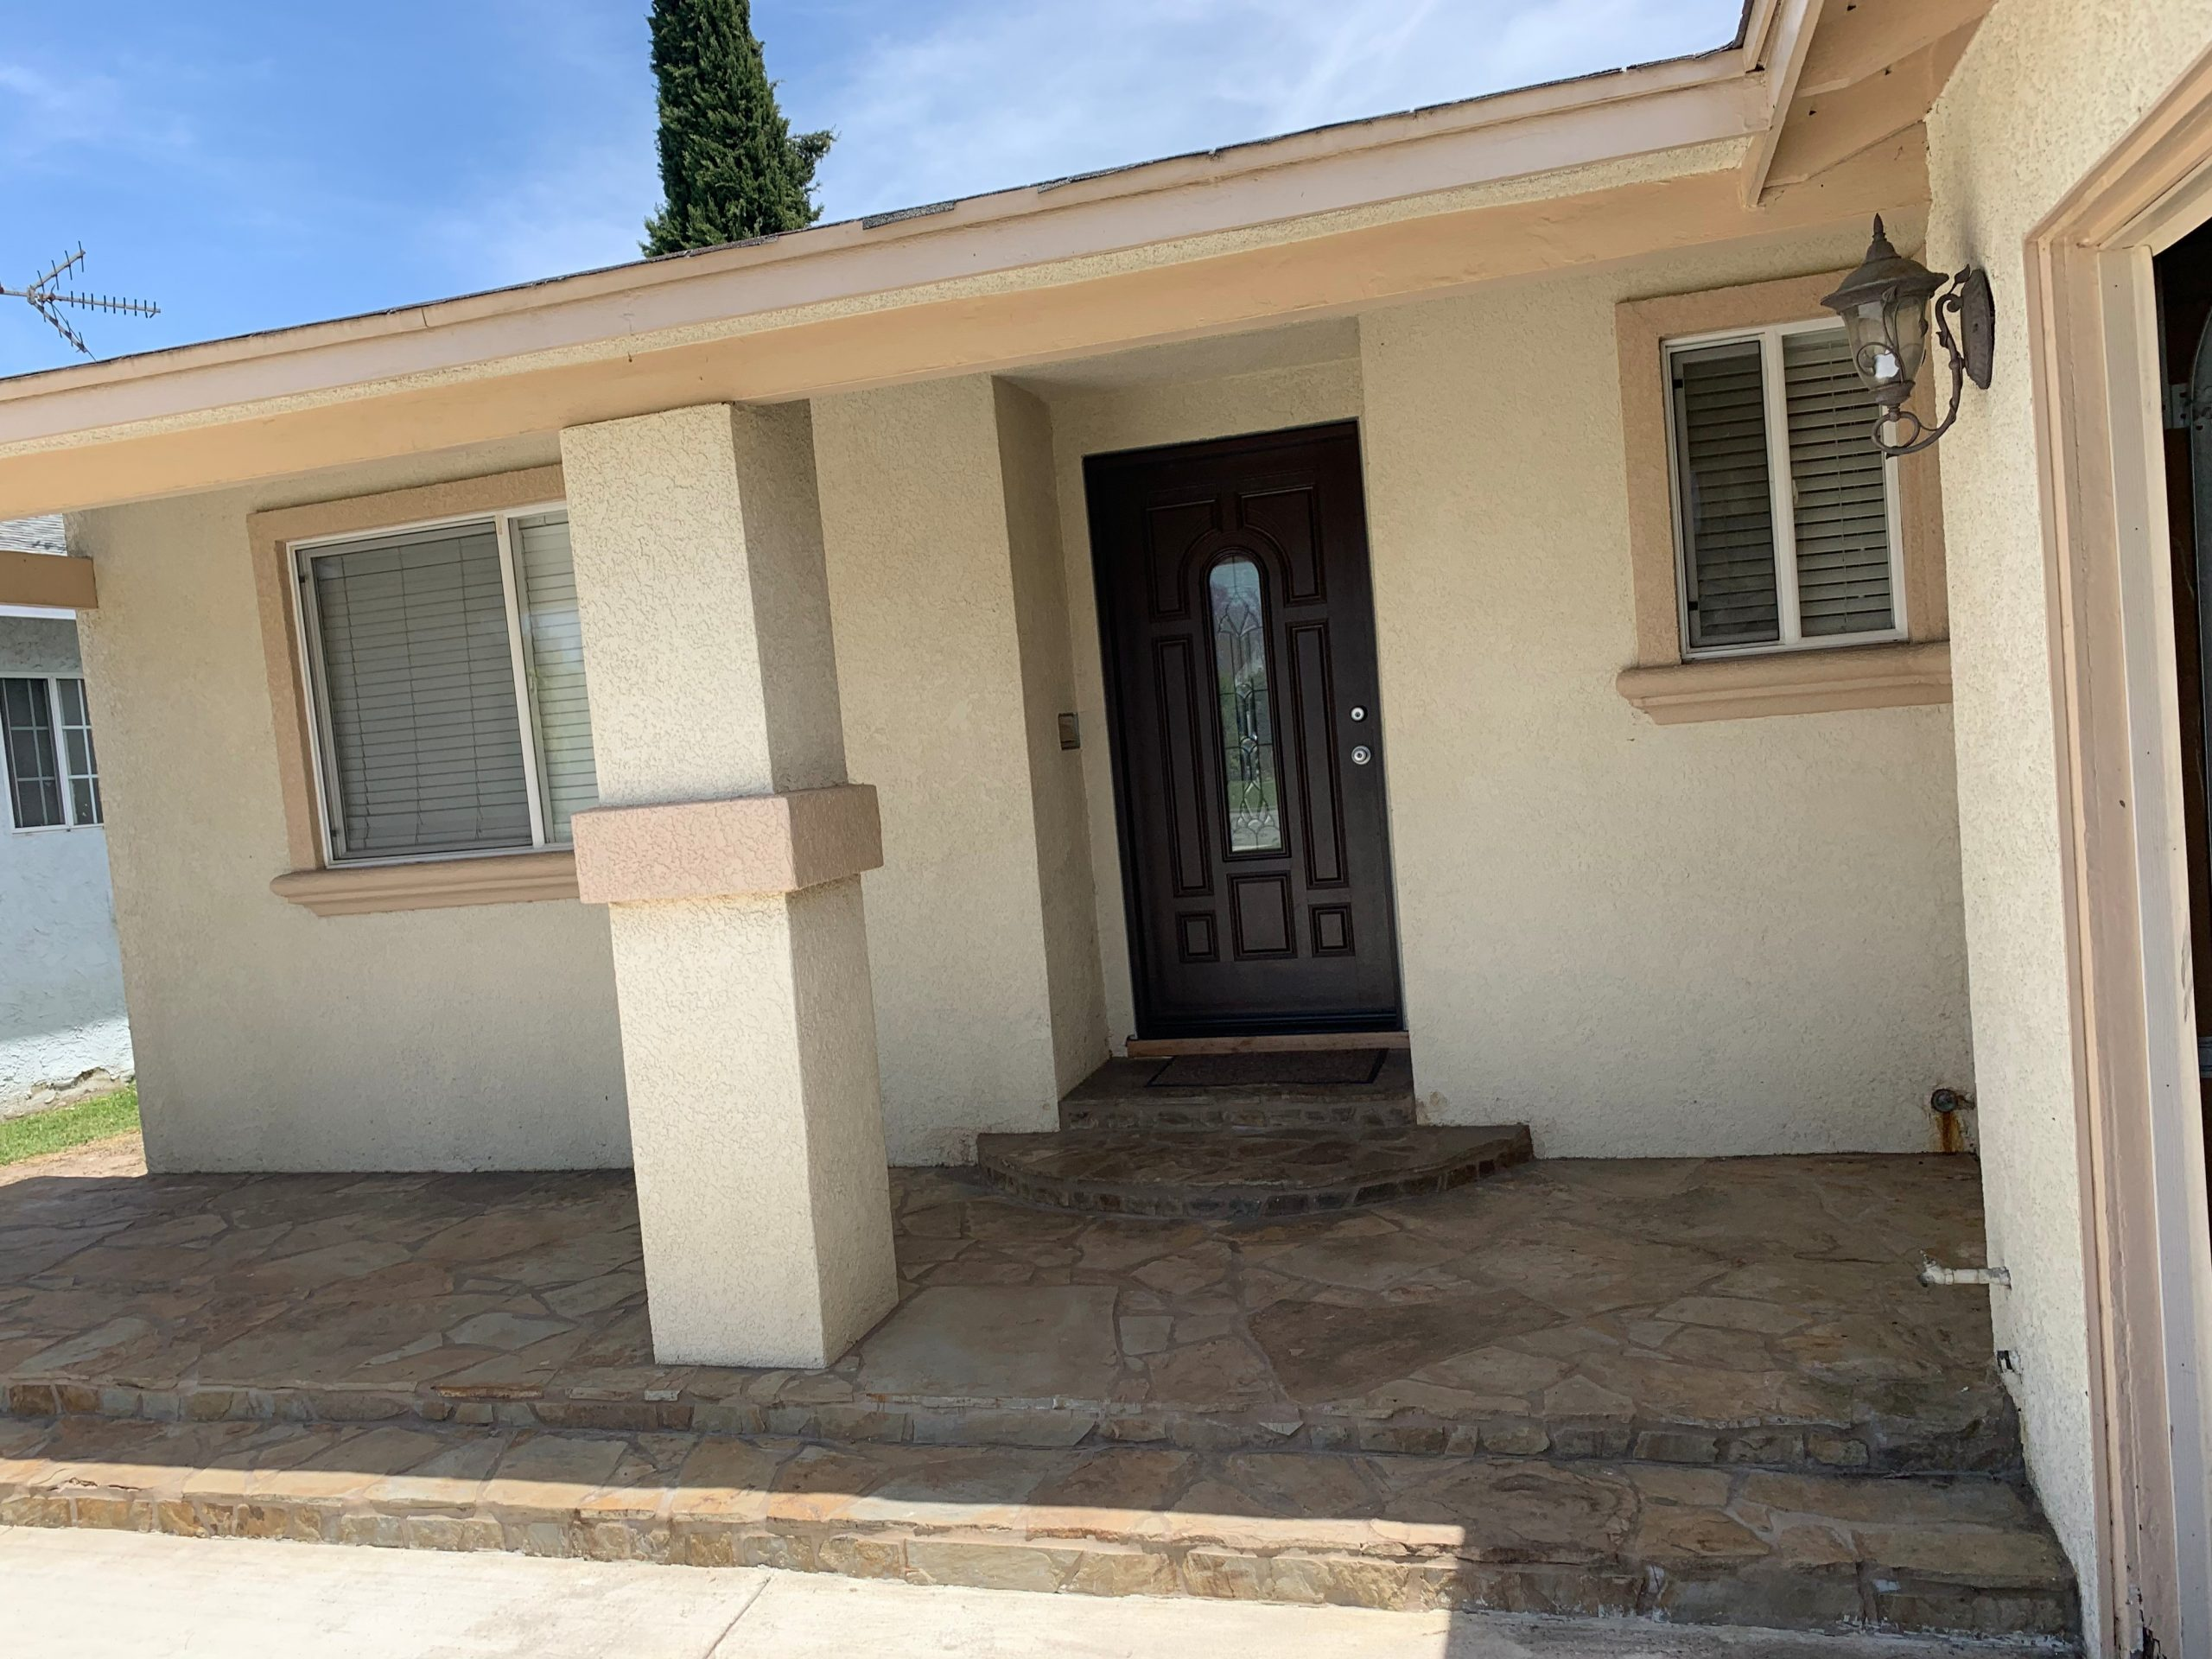 10822 Cord Ave, Downey CA 90241